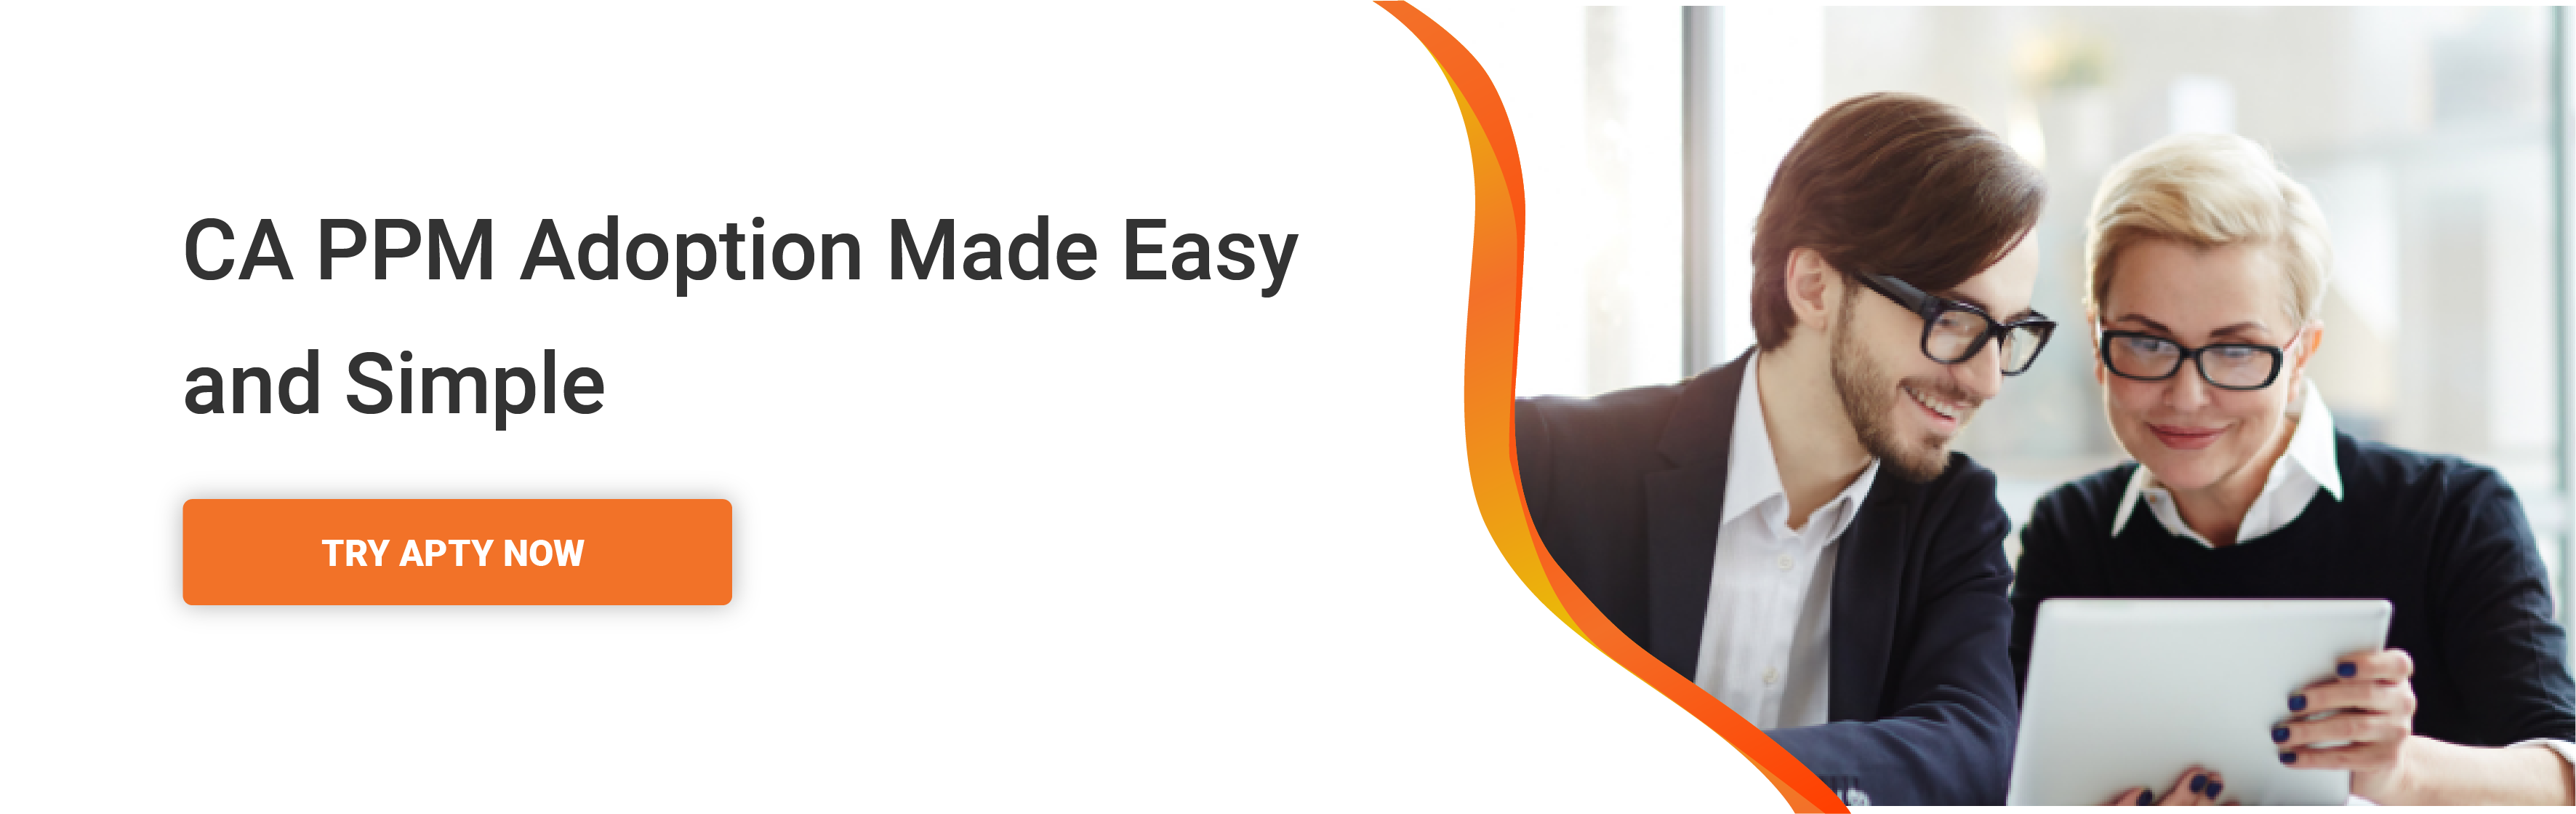 CA PPM adoption made easy and simple